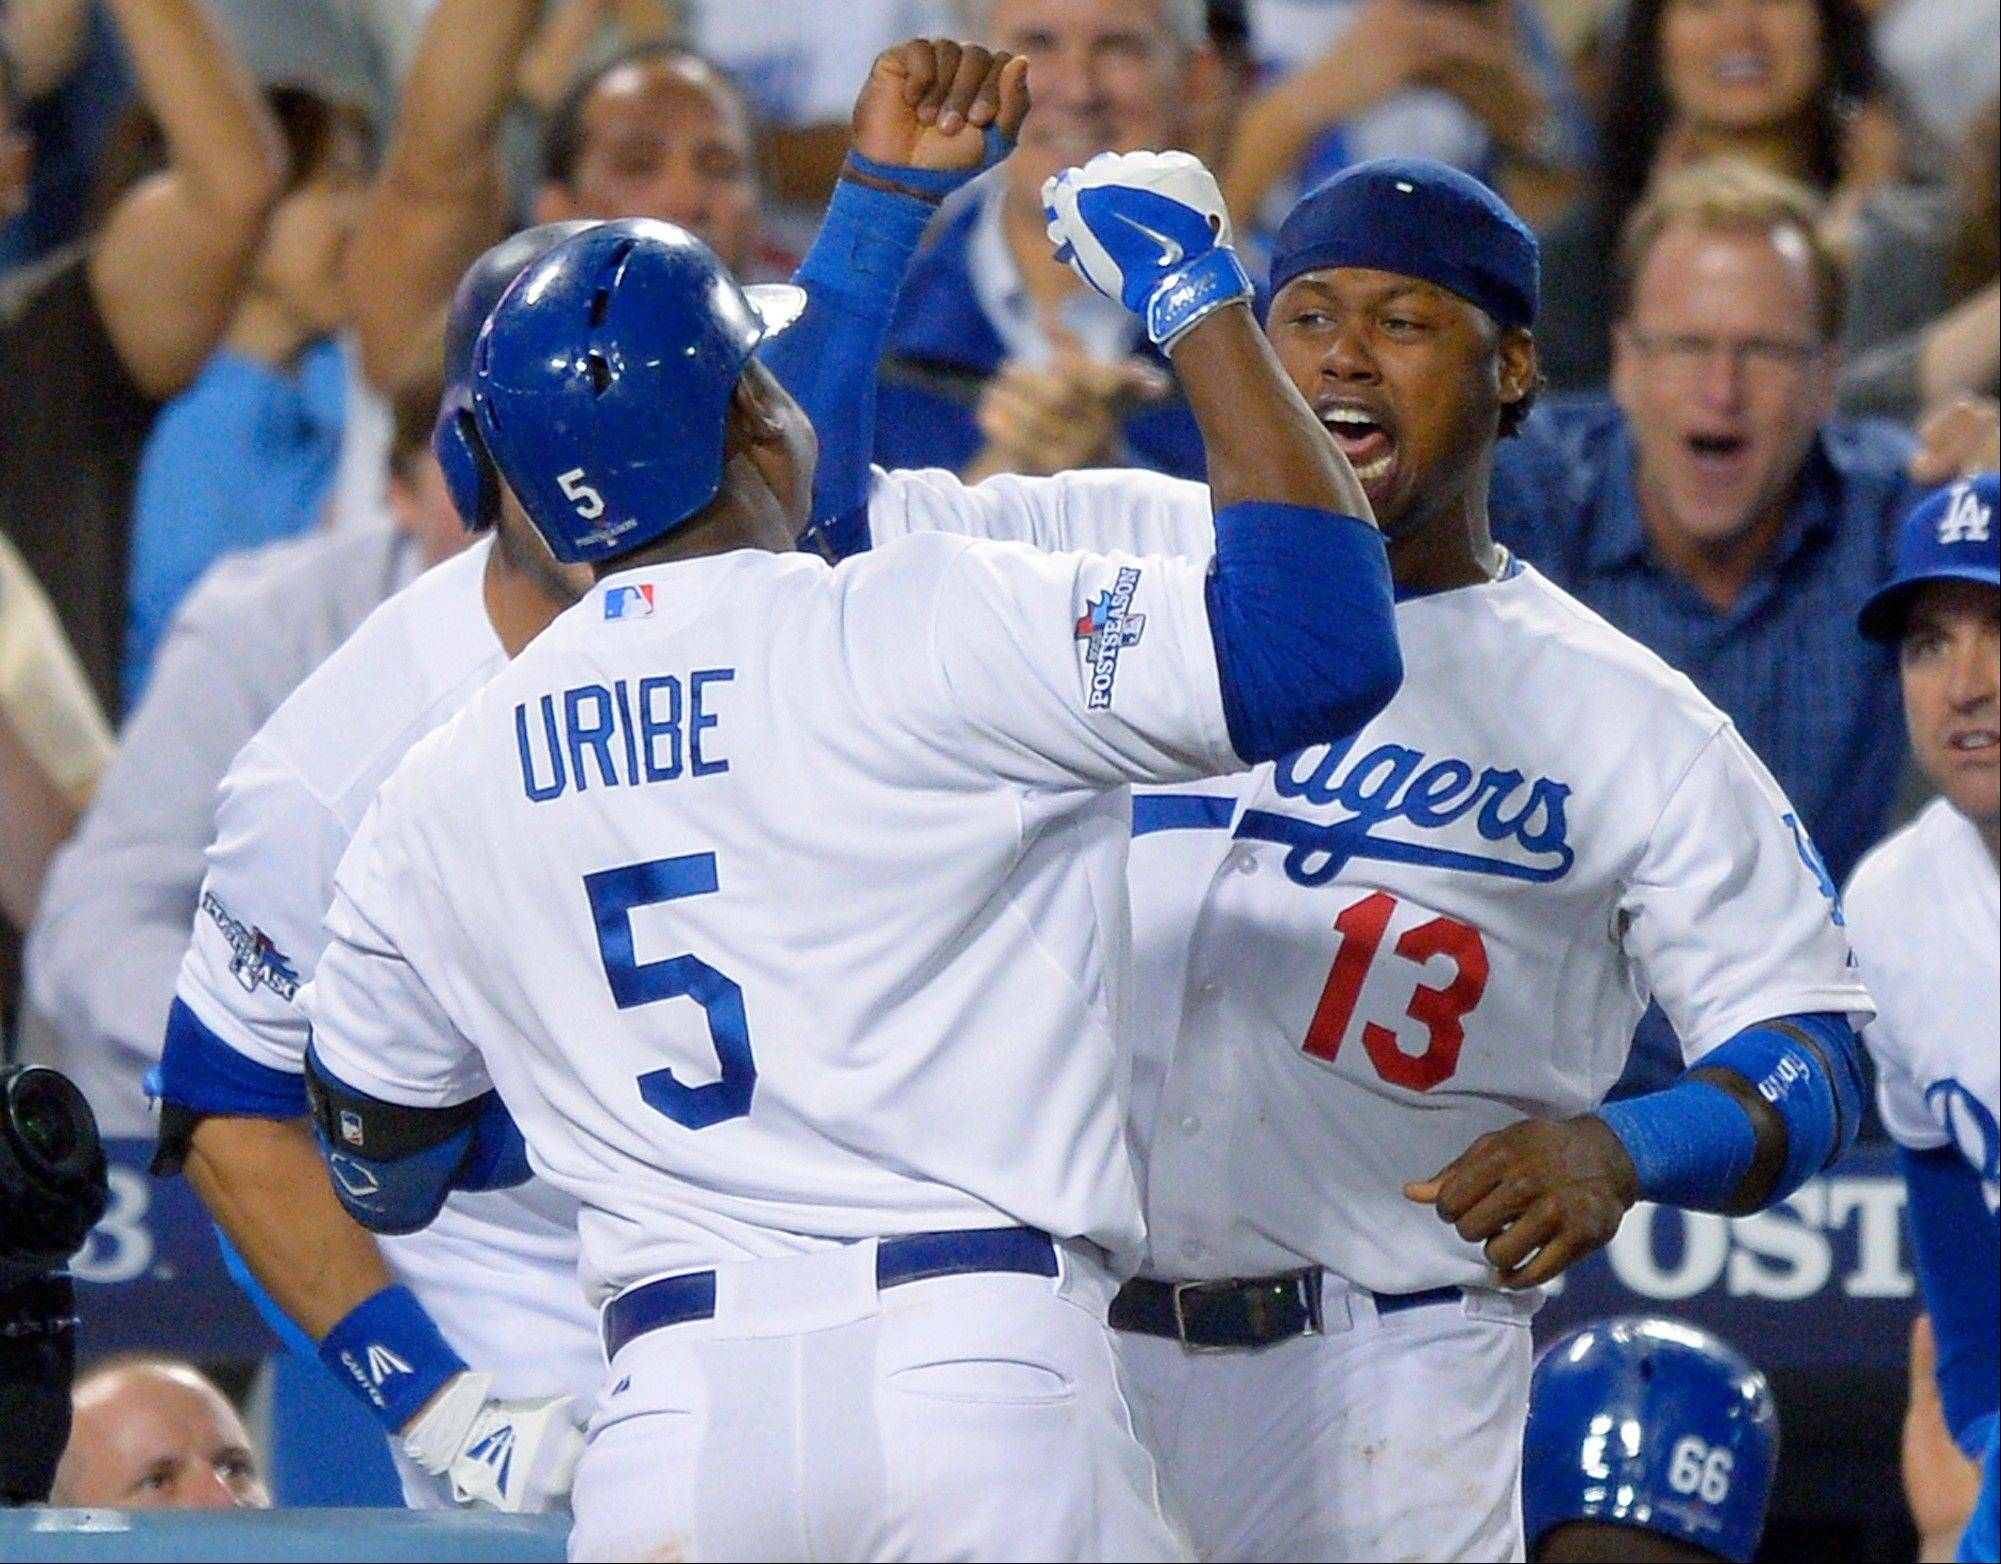 The Dodgers' Juan Uribe (5) celebrates with Hanley Ramirez (13) after Uribe hit a two-run home run in the eighth inning Monday in Game 4 in the National League Division Series against the Braves. The Dodgers won 4-3 at home.